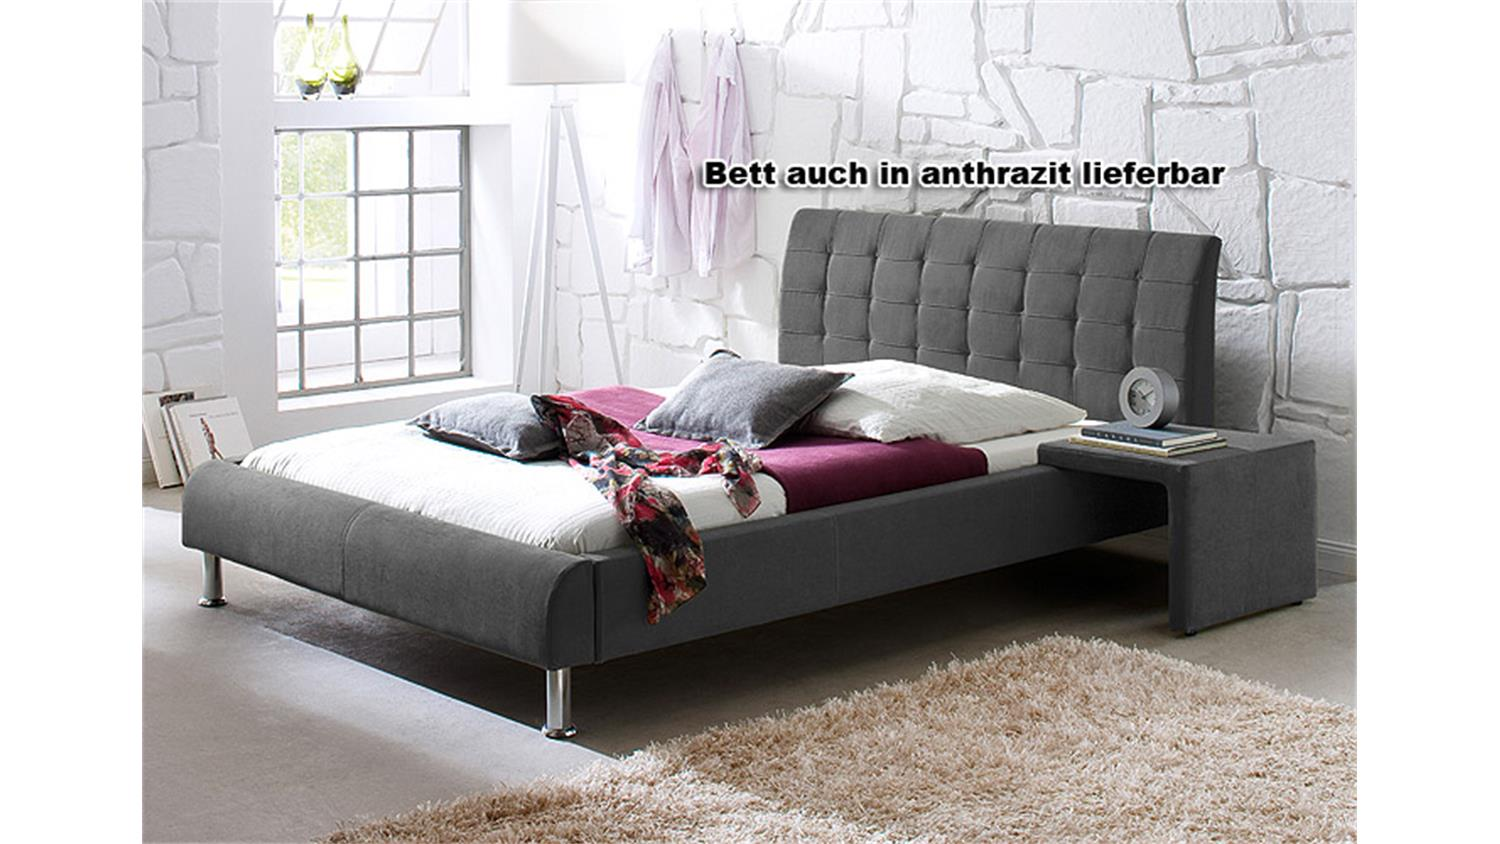 bett kopfteil mit stoff beziehen die neueste innovation. Black Bedroom Furniture Sets. Home Design Ideas